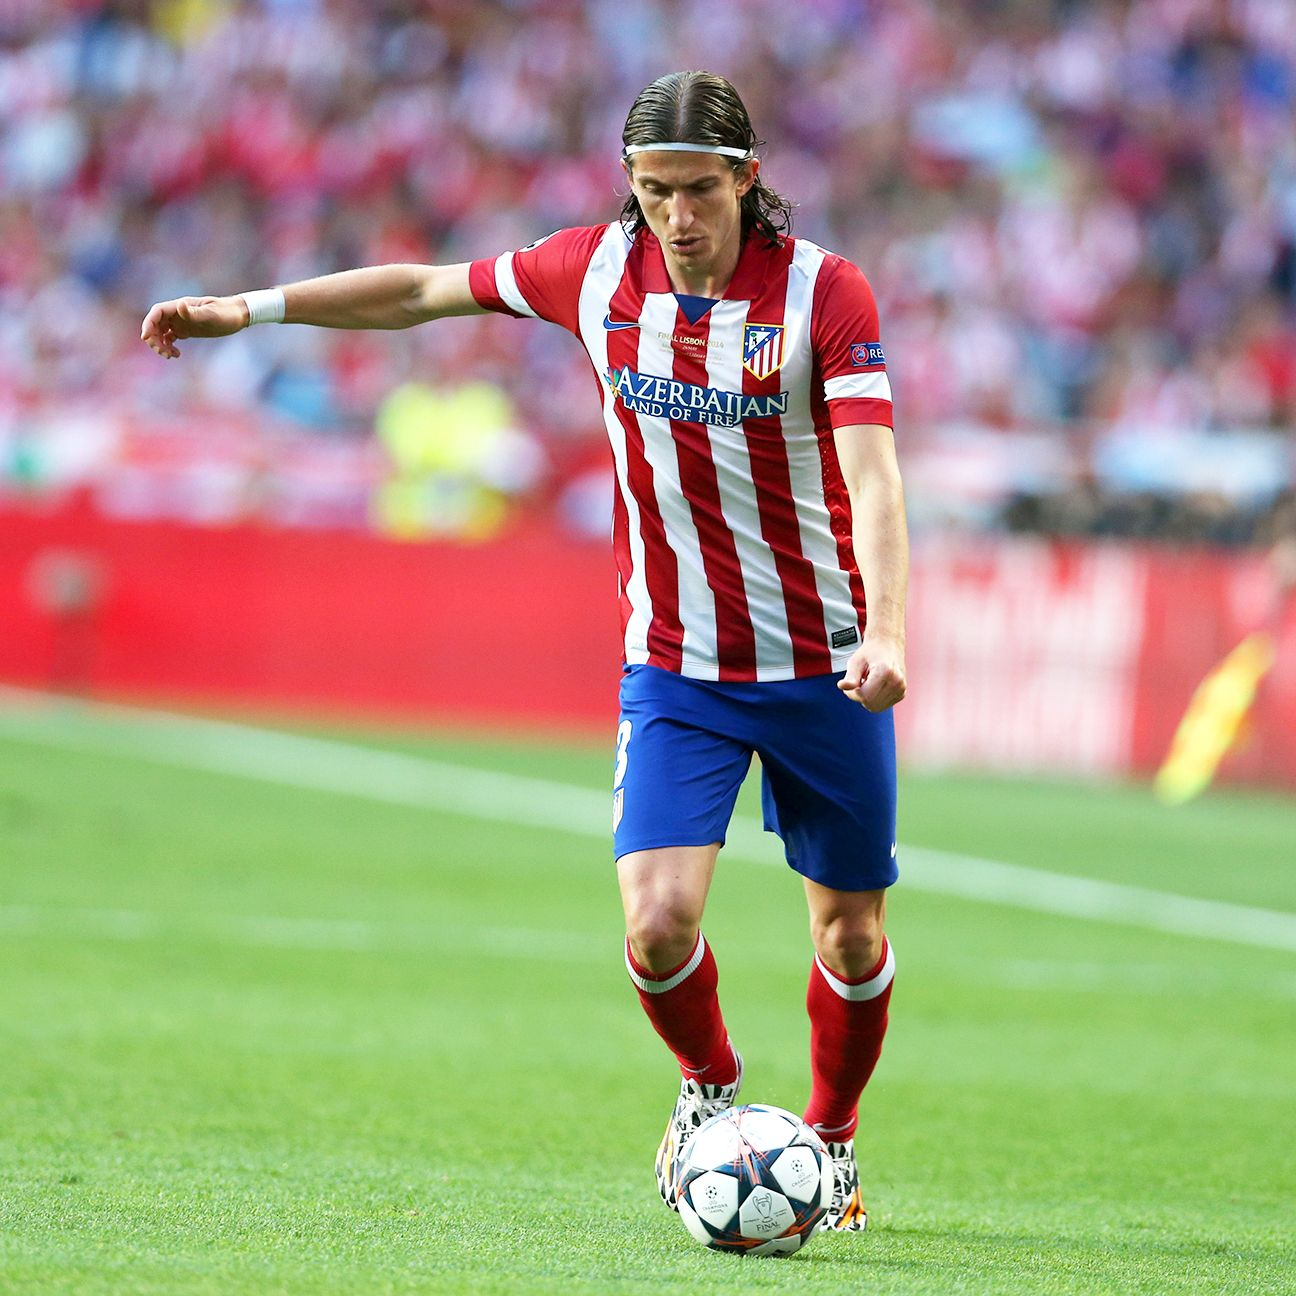 Filipe Luis played a big role in Atletico Madrid's 2013-14 La Liga title success.